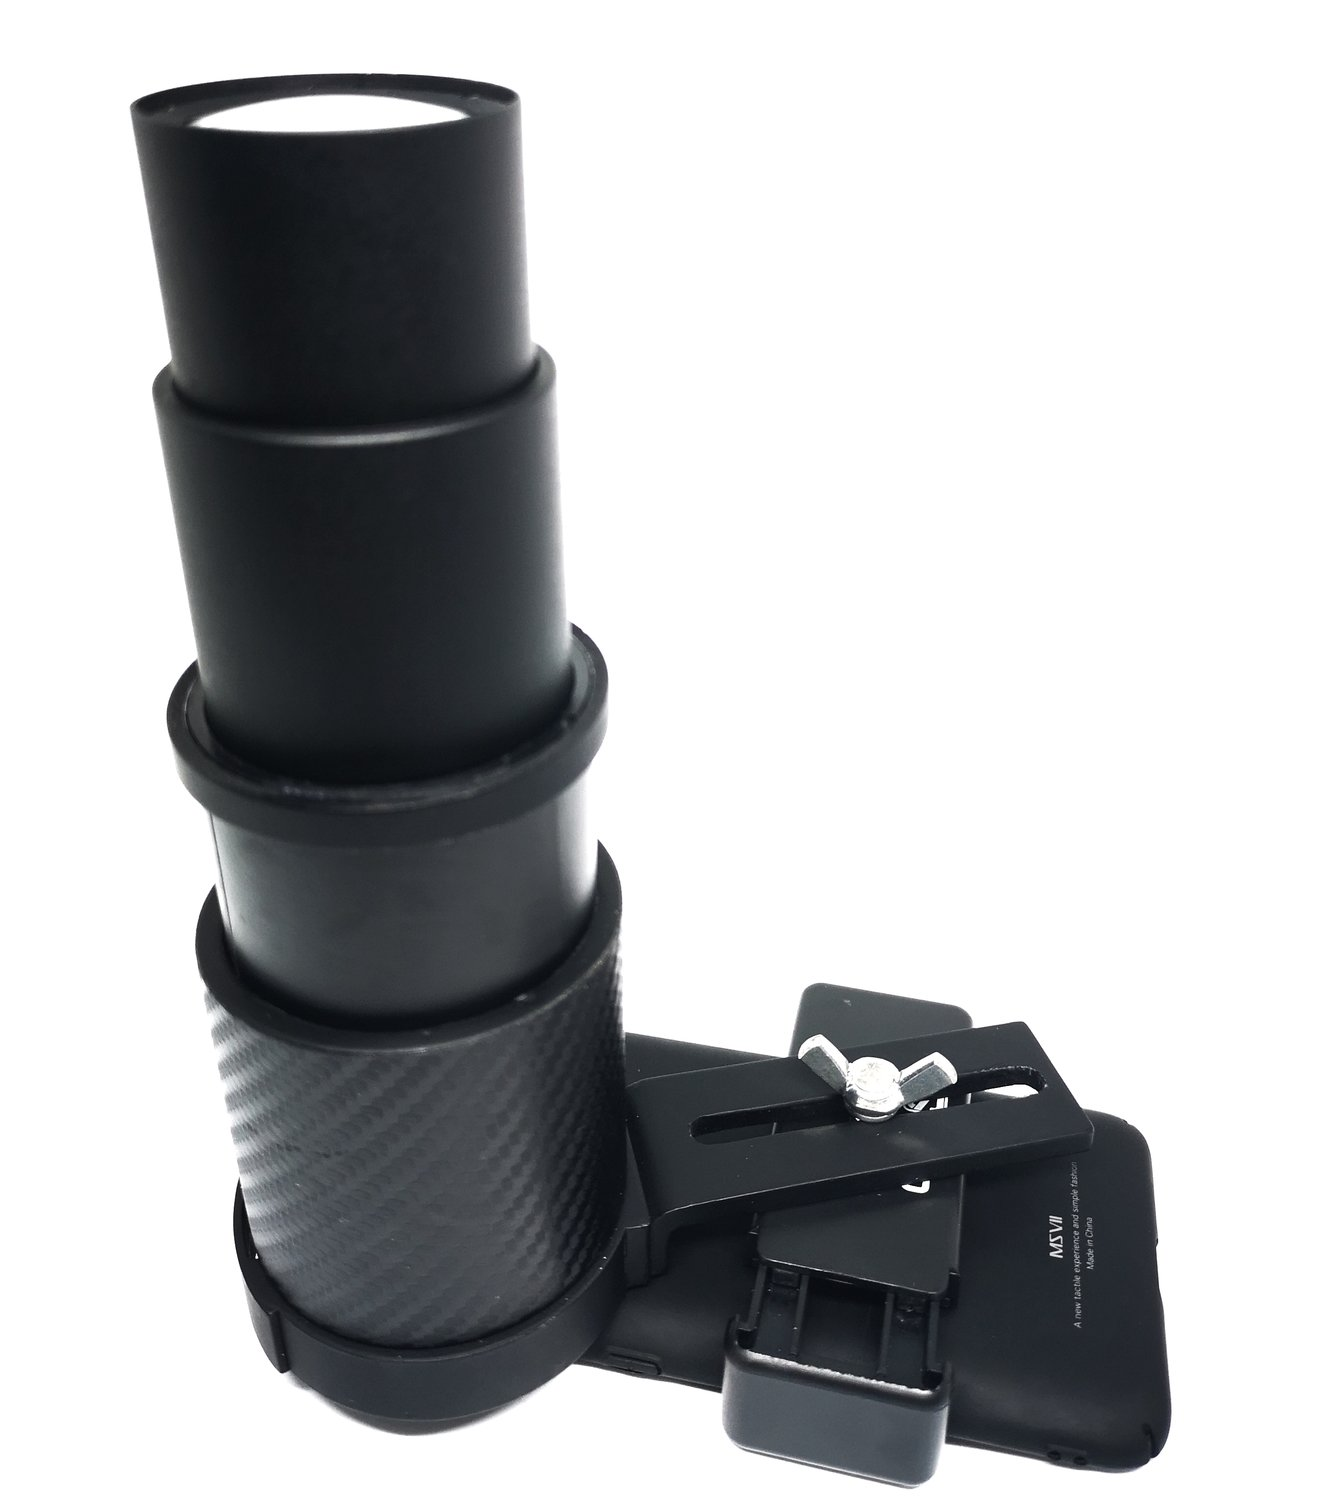 Prosumer Indo Super Zoom / Macro Phone Lens with Variable Magnification (IDZ-1) #MoonShooter